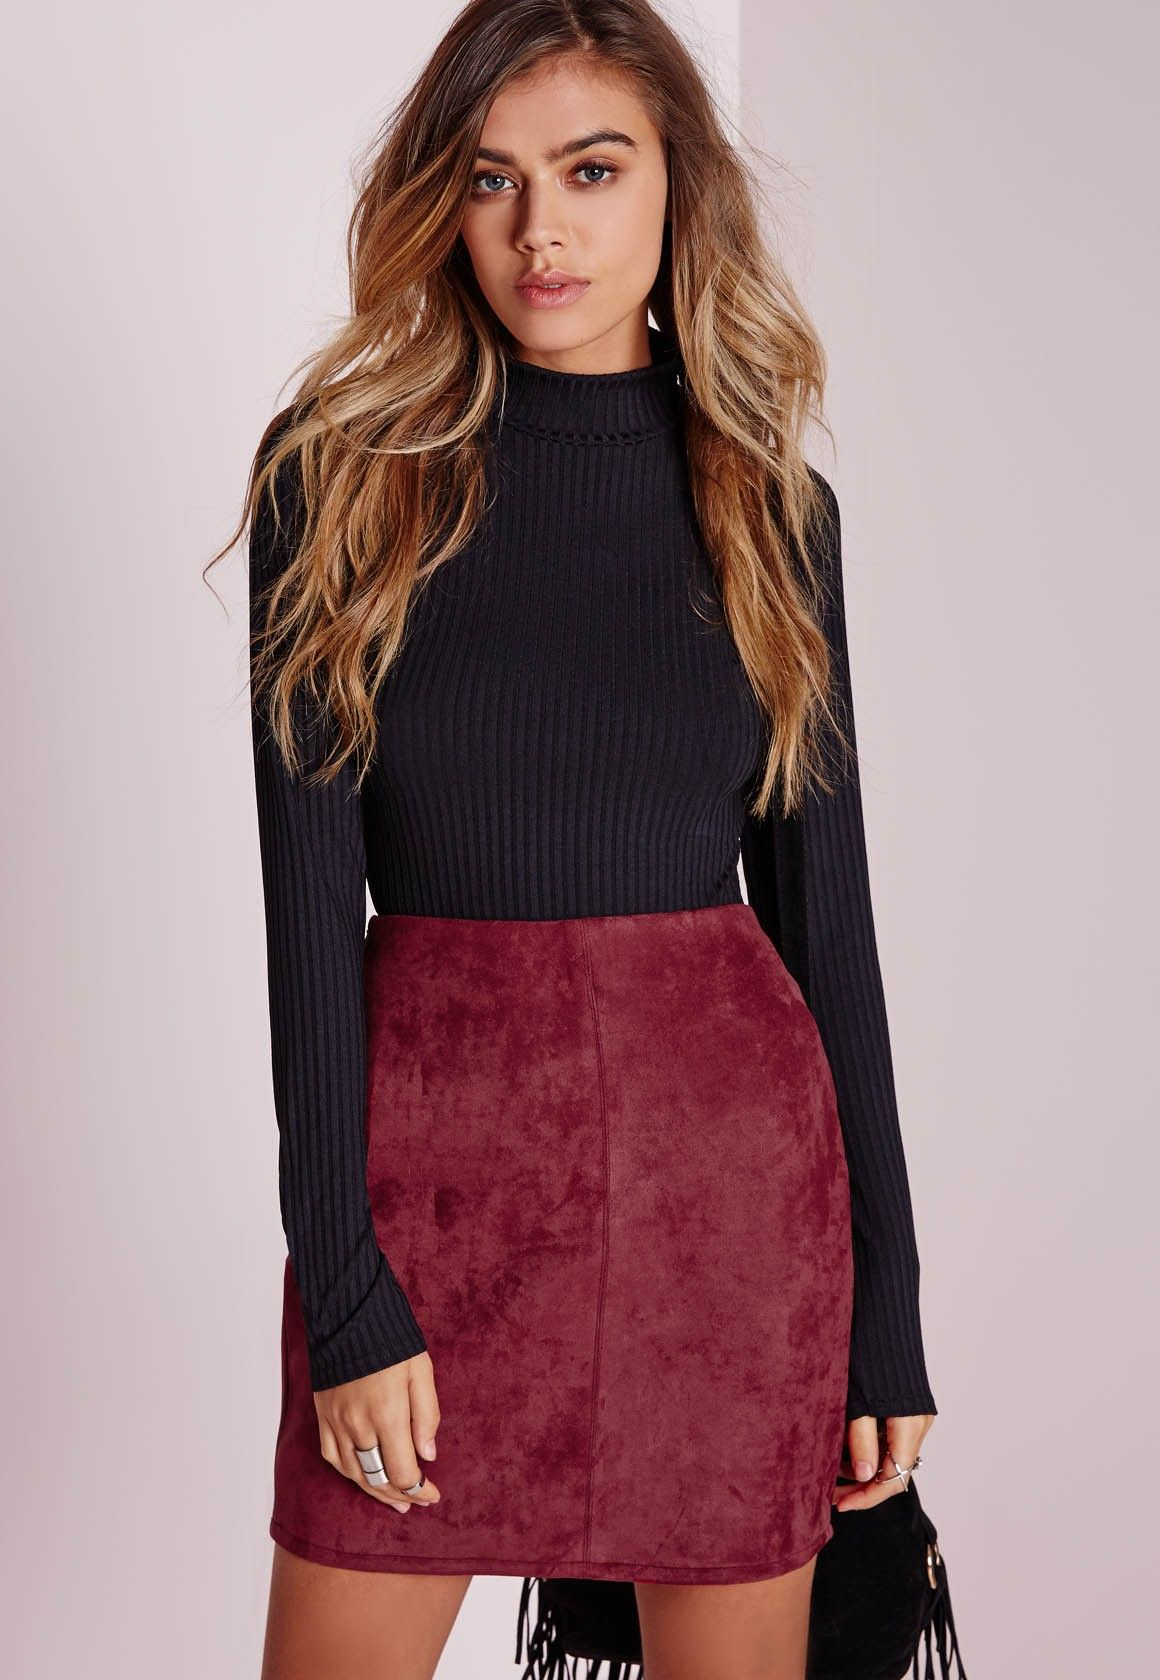 Faux Suede Mini Skirt Burgundy Find More Like This On